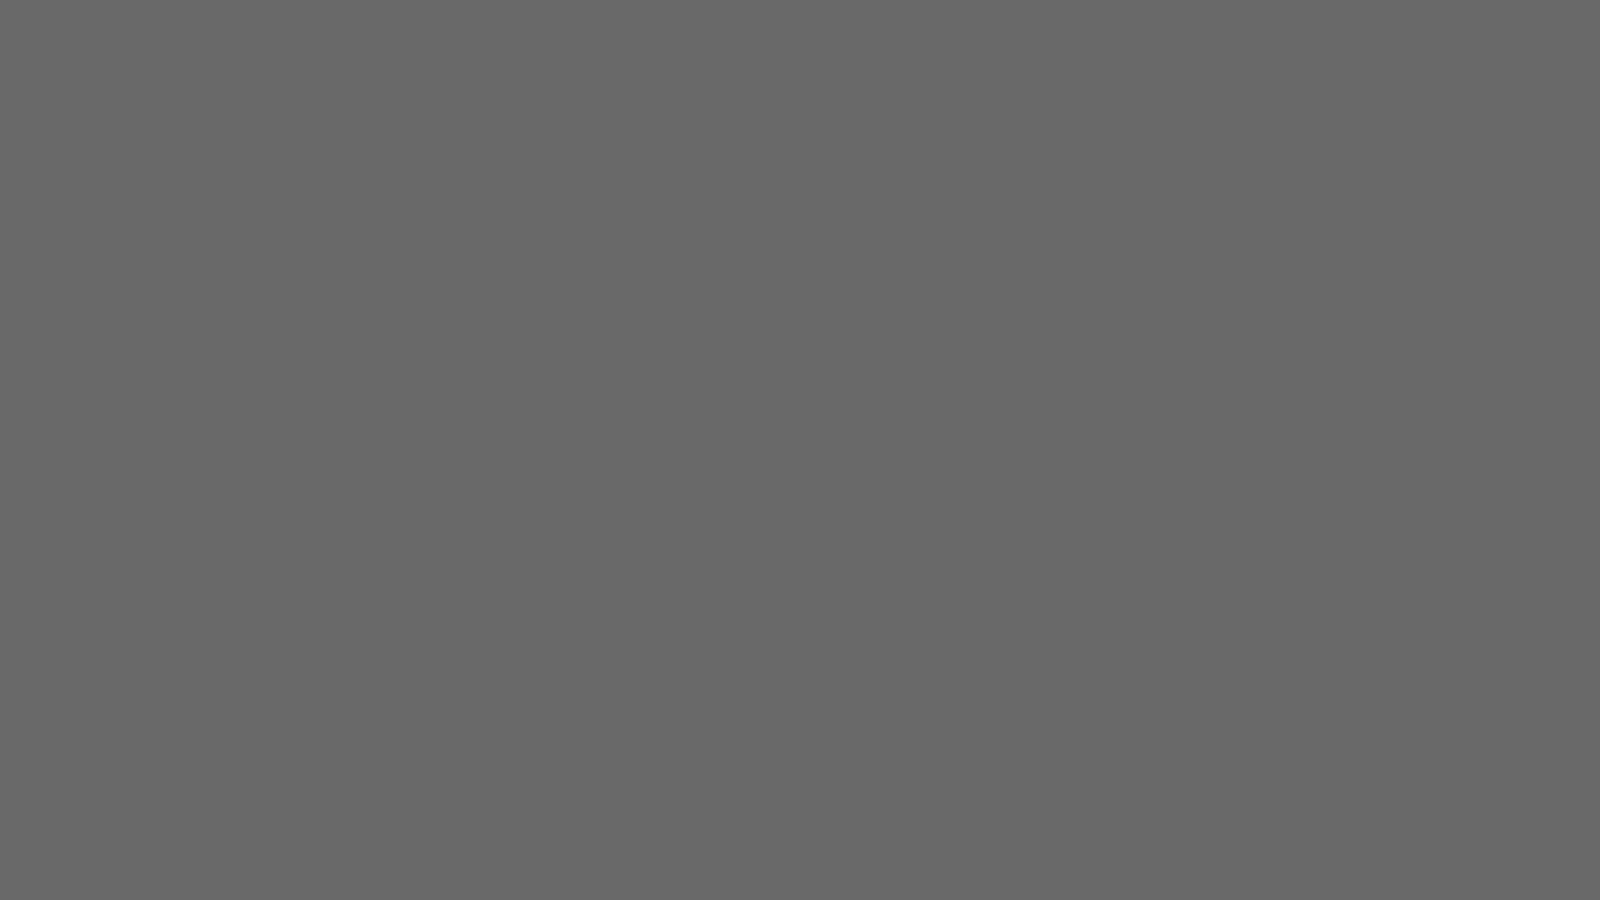 1600x900 Dim Gray Solid Color Background